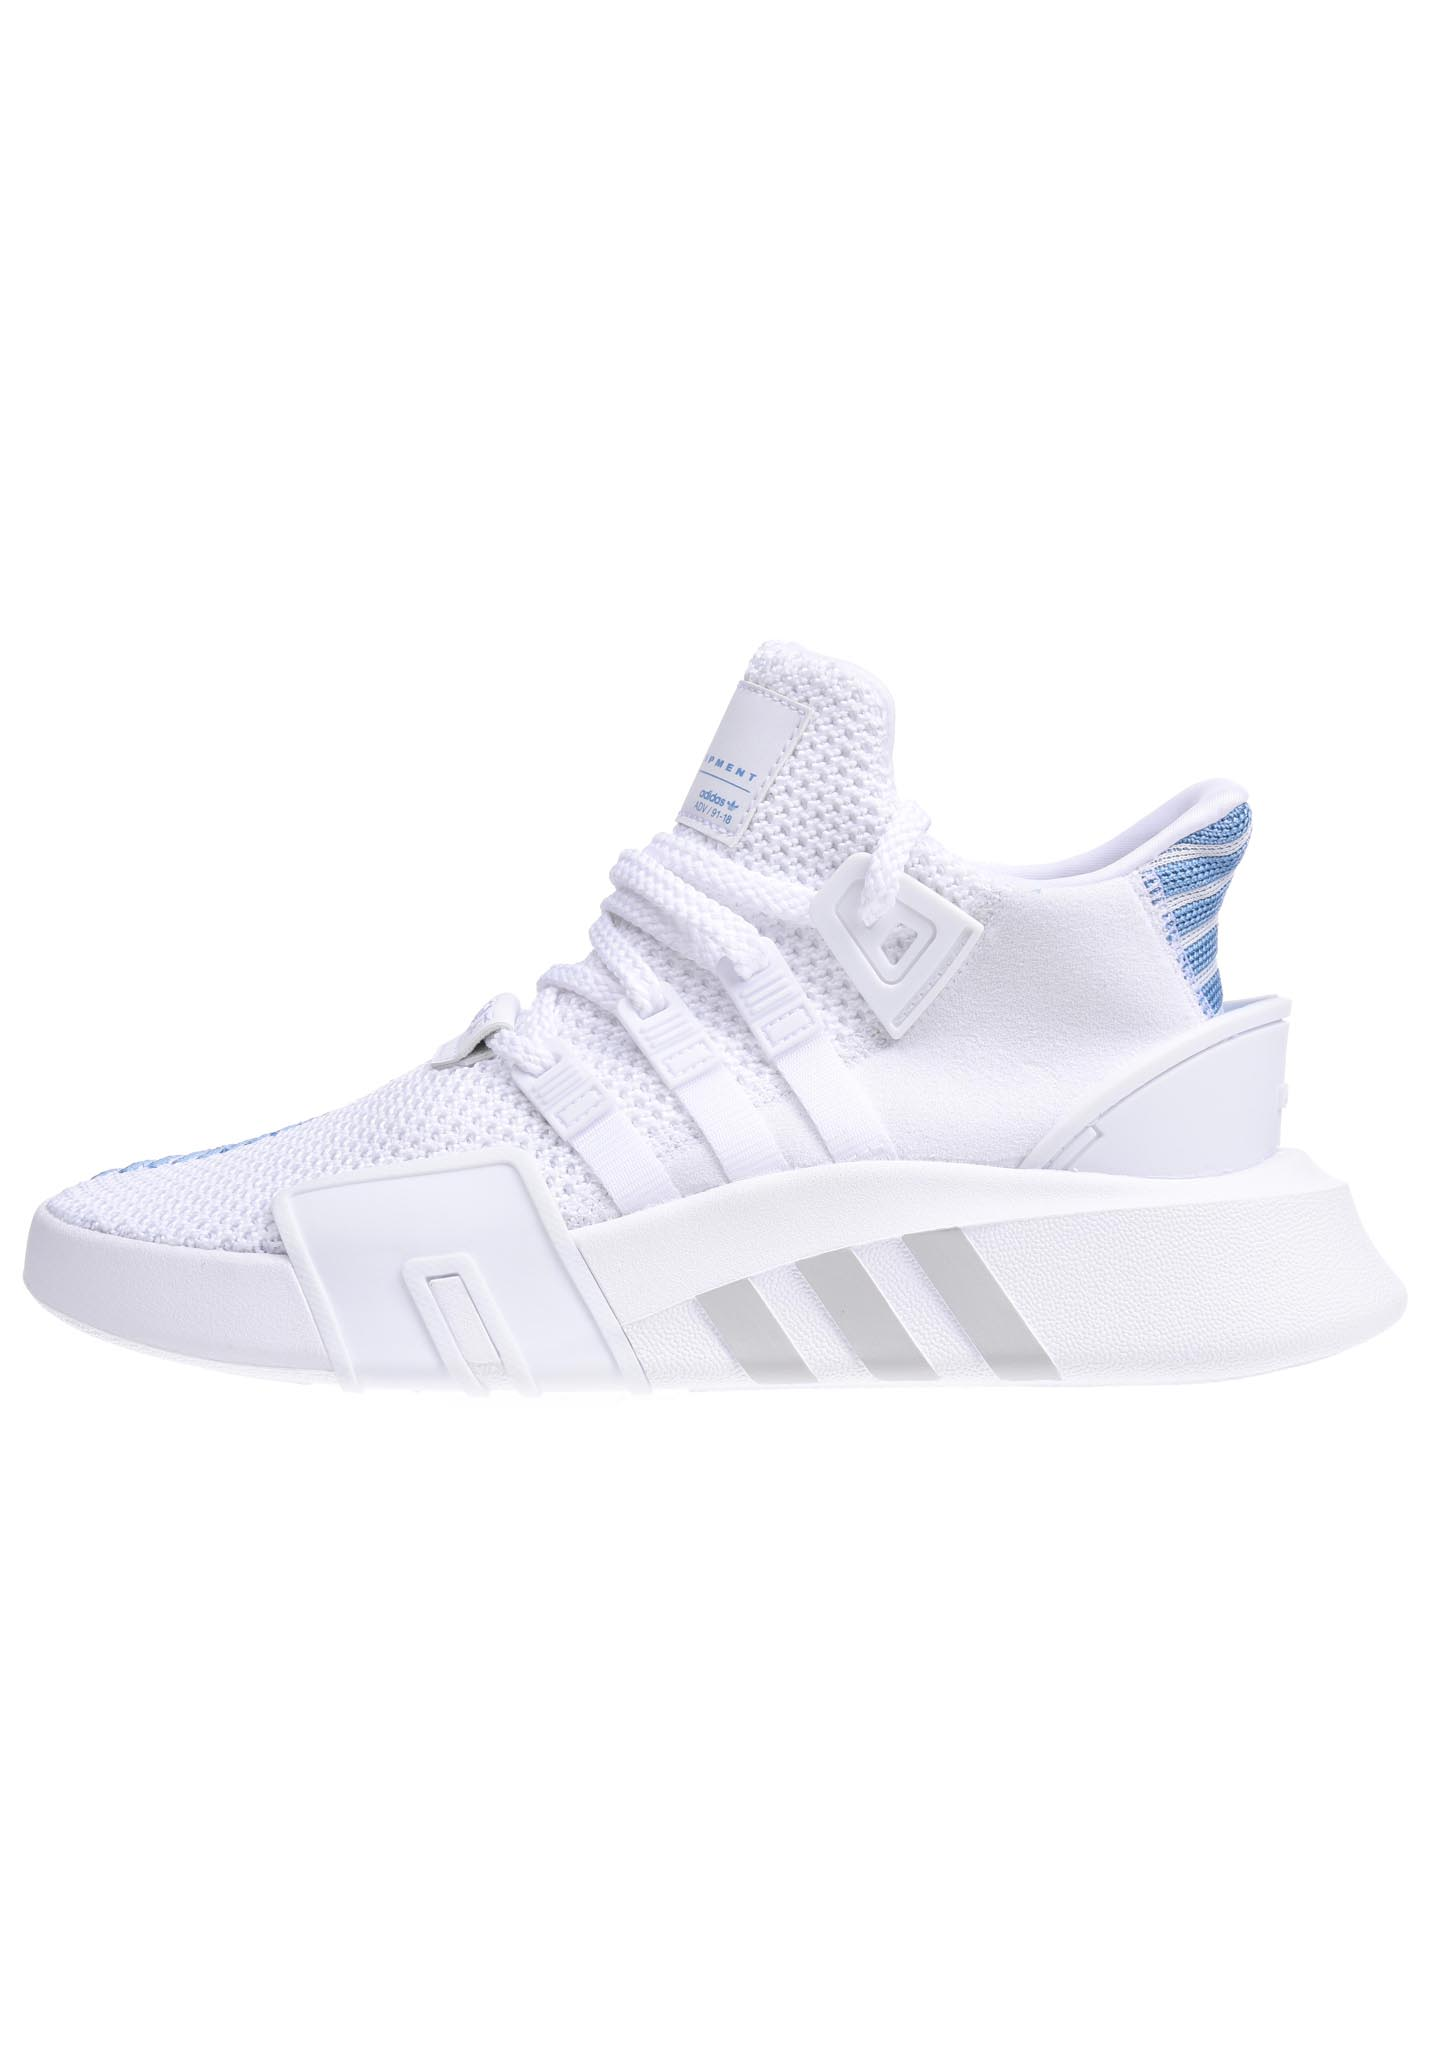 ADIDAS EQT Bask Advance - Sneakers for Women - White